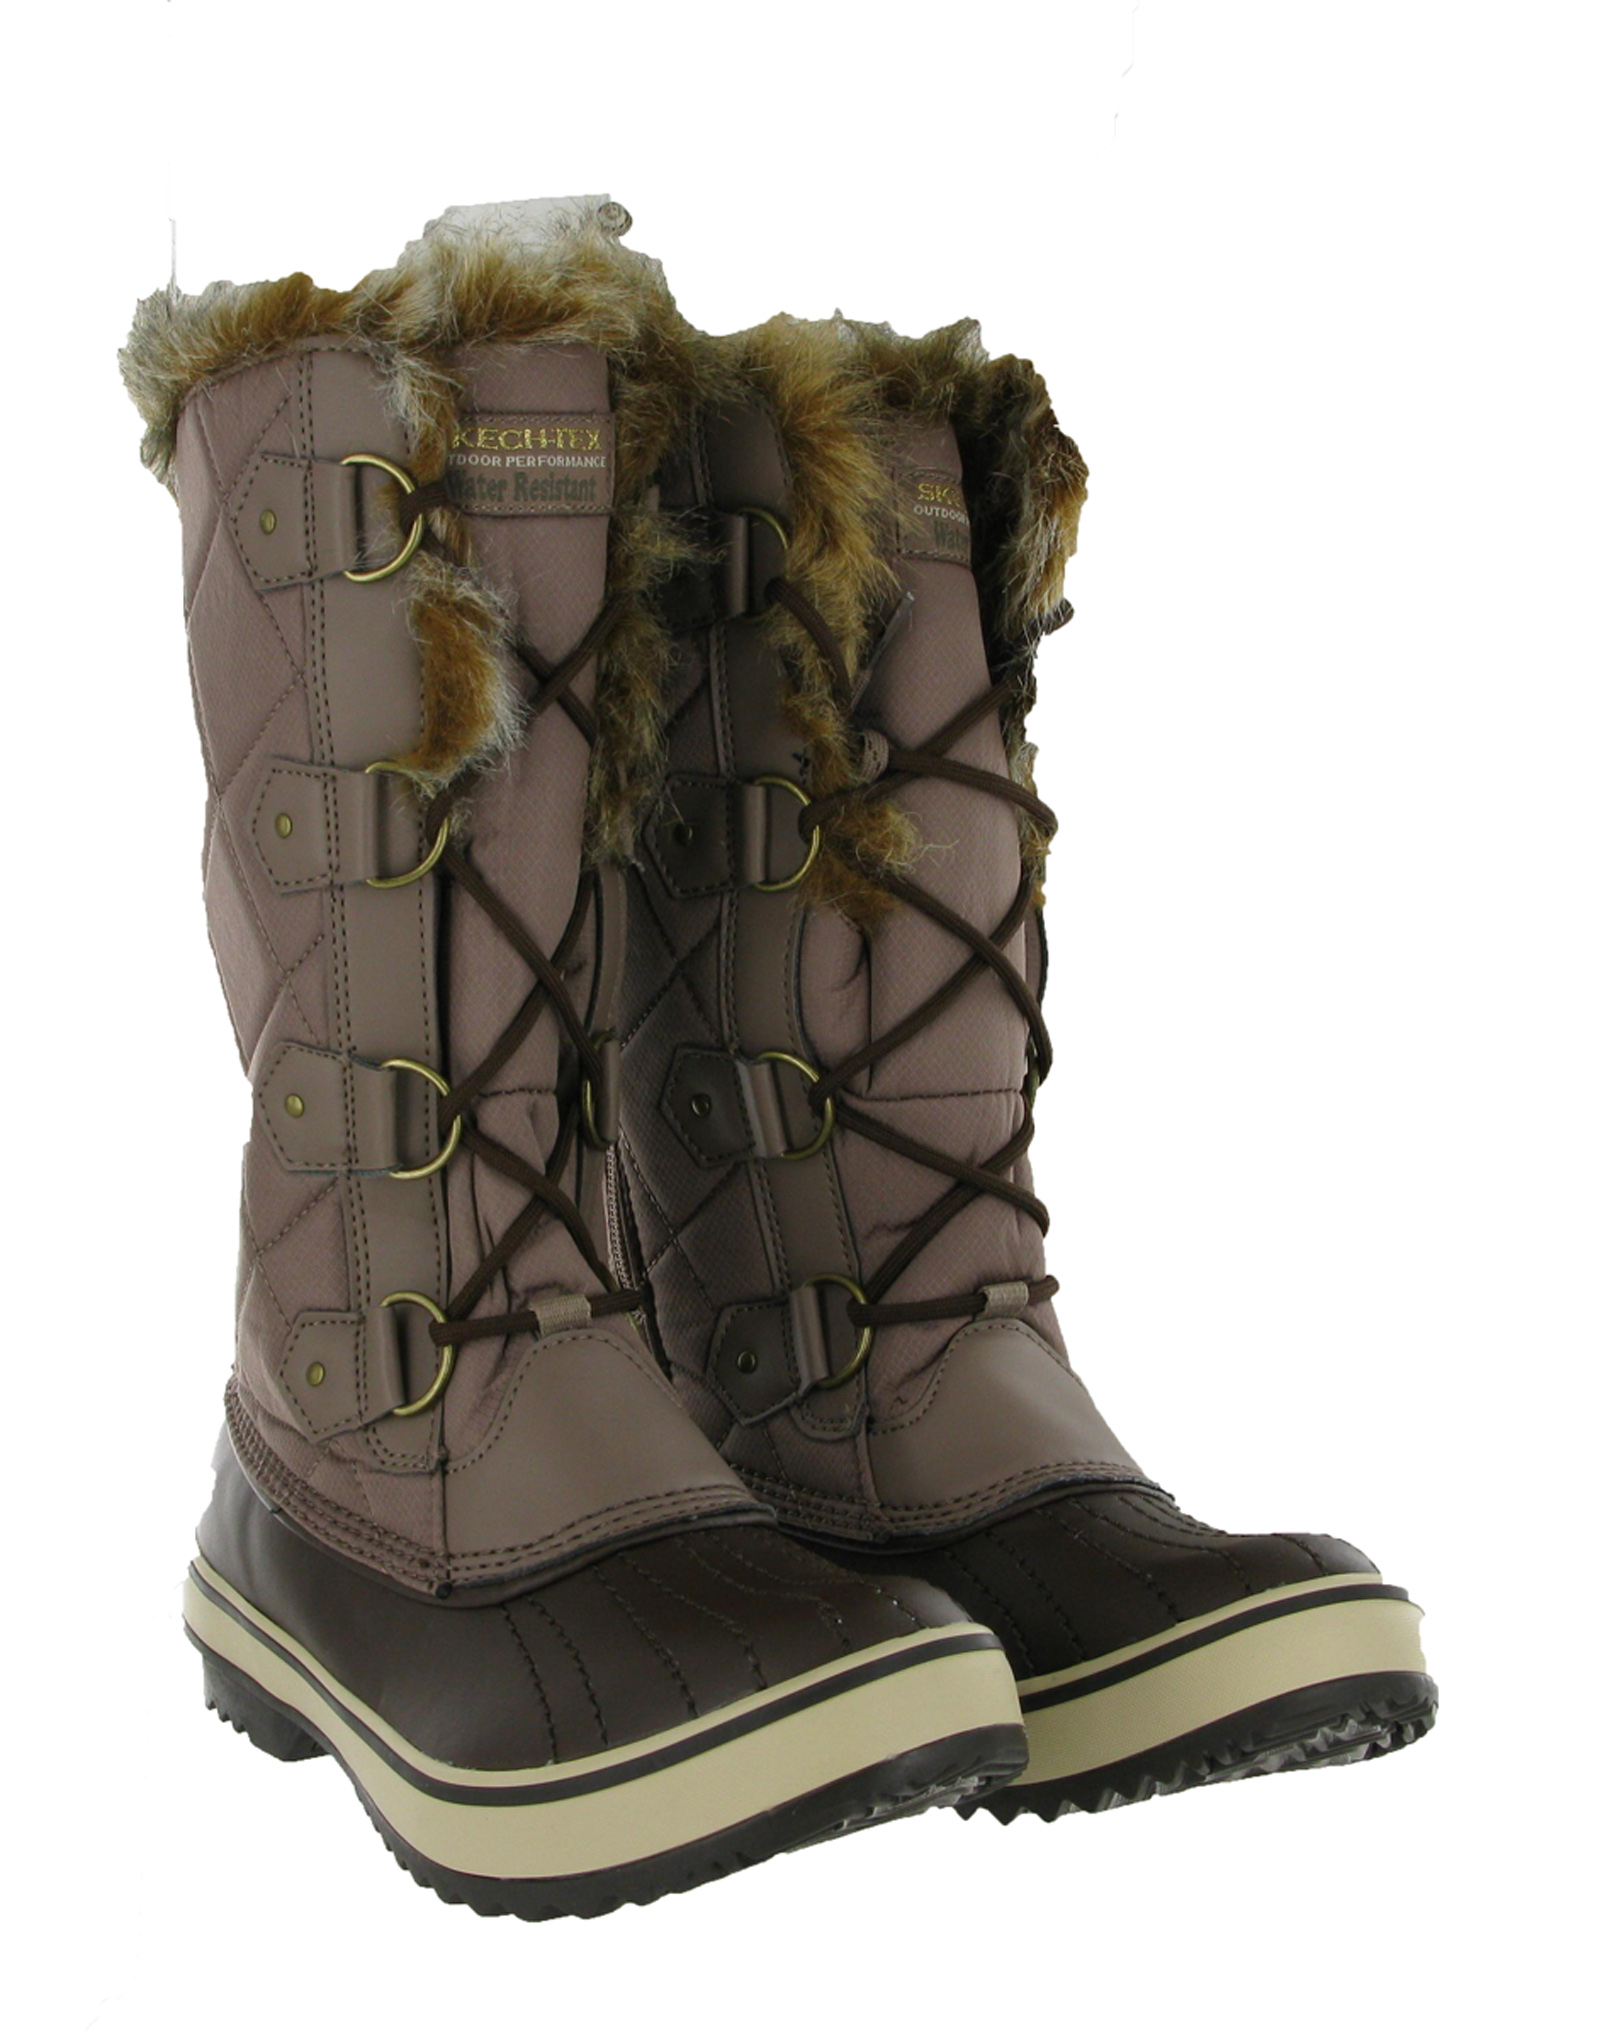 s winter boots size 13 mount mercy